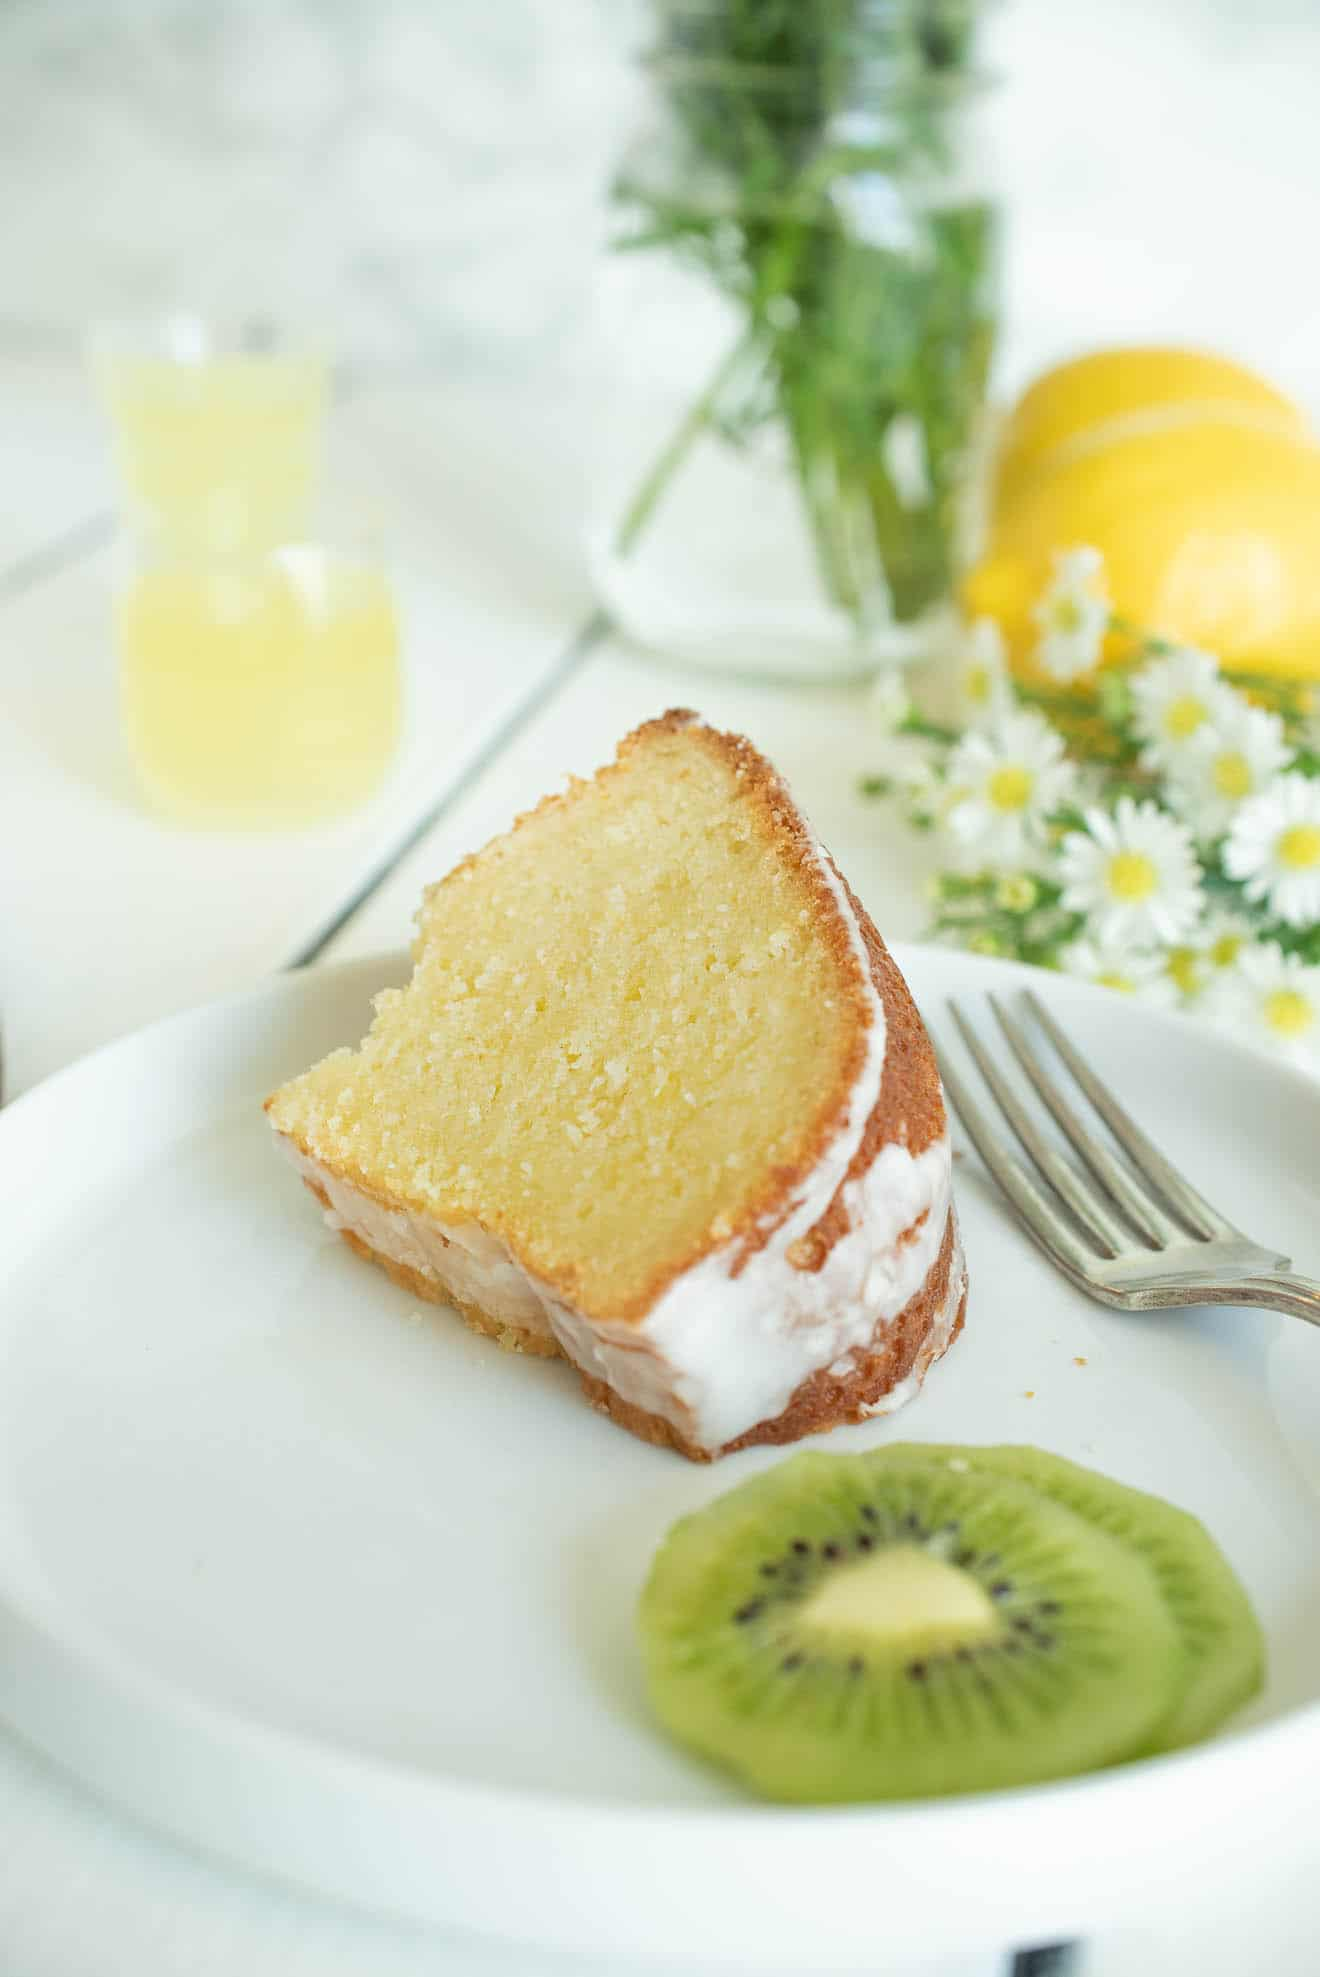 A slice of limoncello pound cake on a white plate with a fork and slices of kiwi